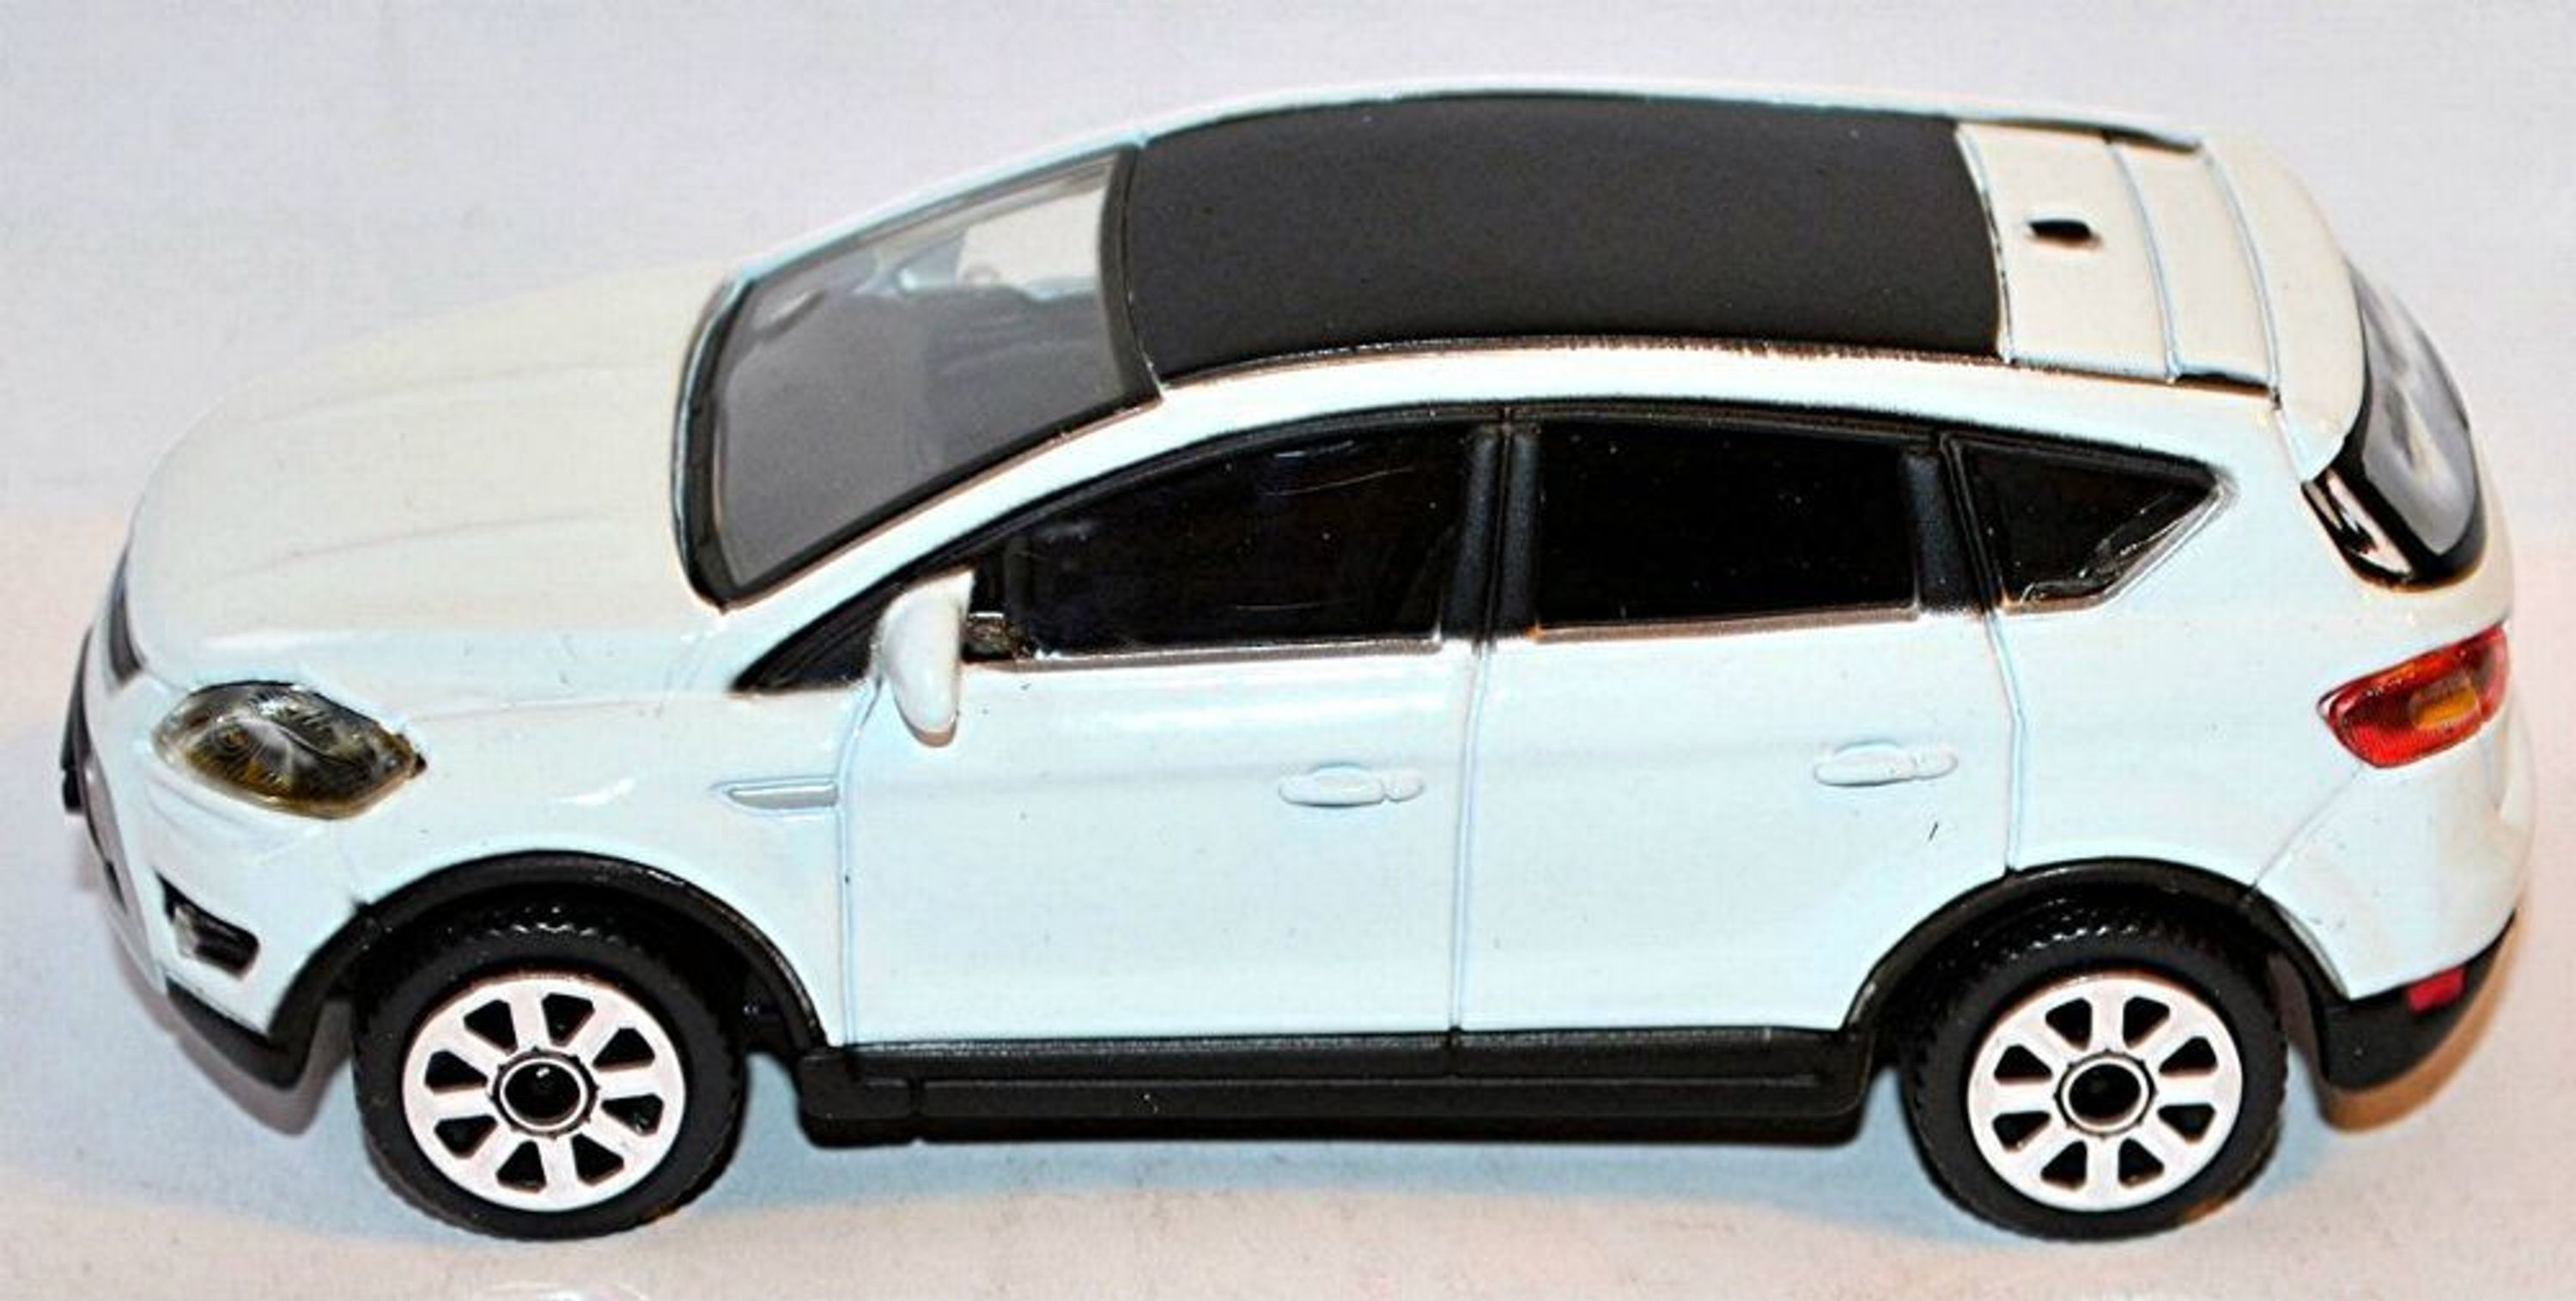 ford kuga 08 suv 2008 12 wei white 1 43 bburago kaufen. Black Bedroom Furniture Sets. Home Design Ideas